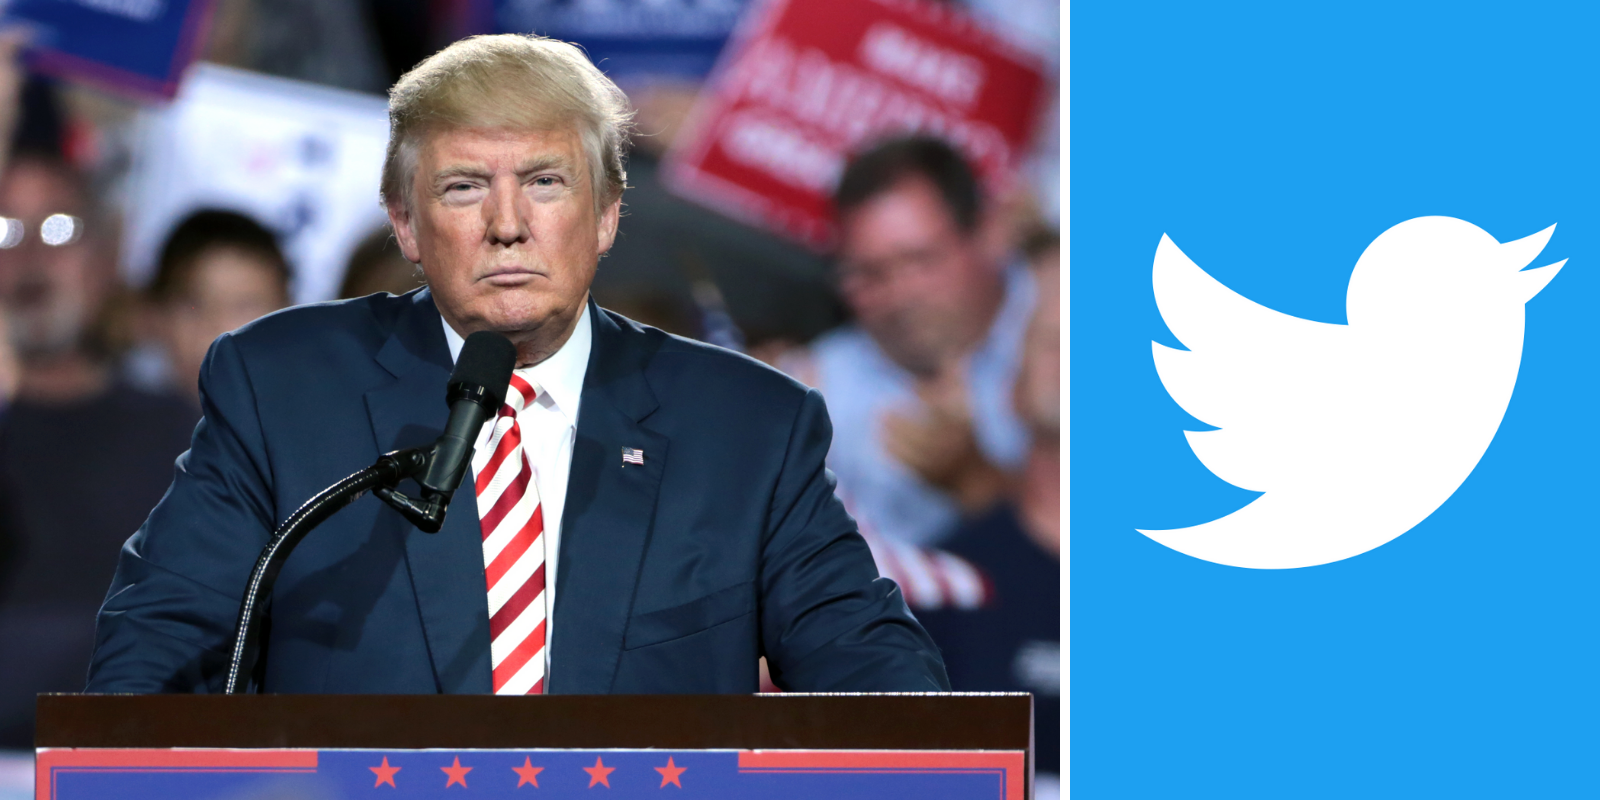 Twitter bans 'From the Desk of Donald J. Trump' account for the crime of reproducing his words